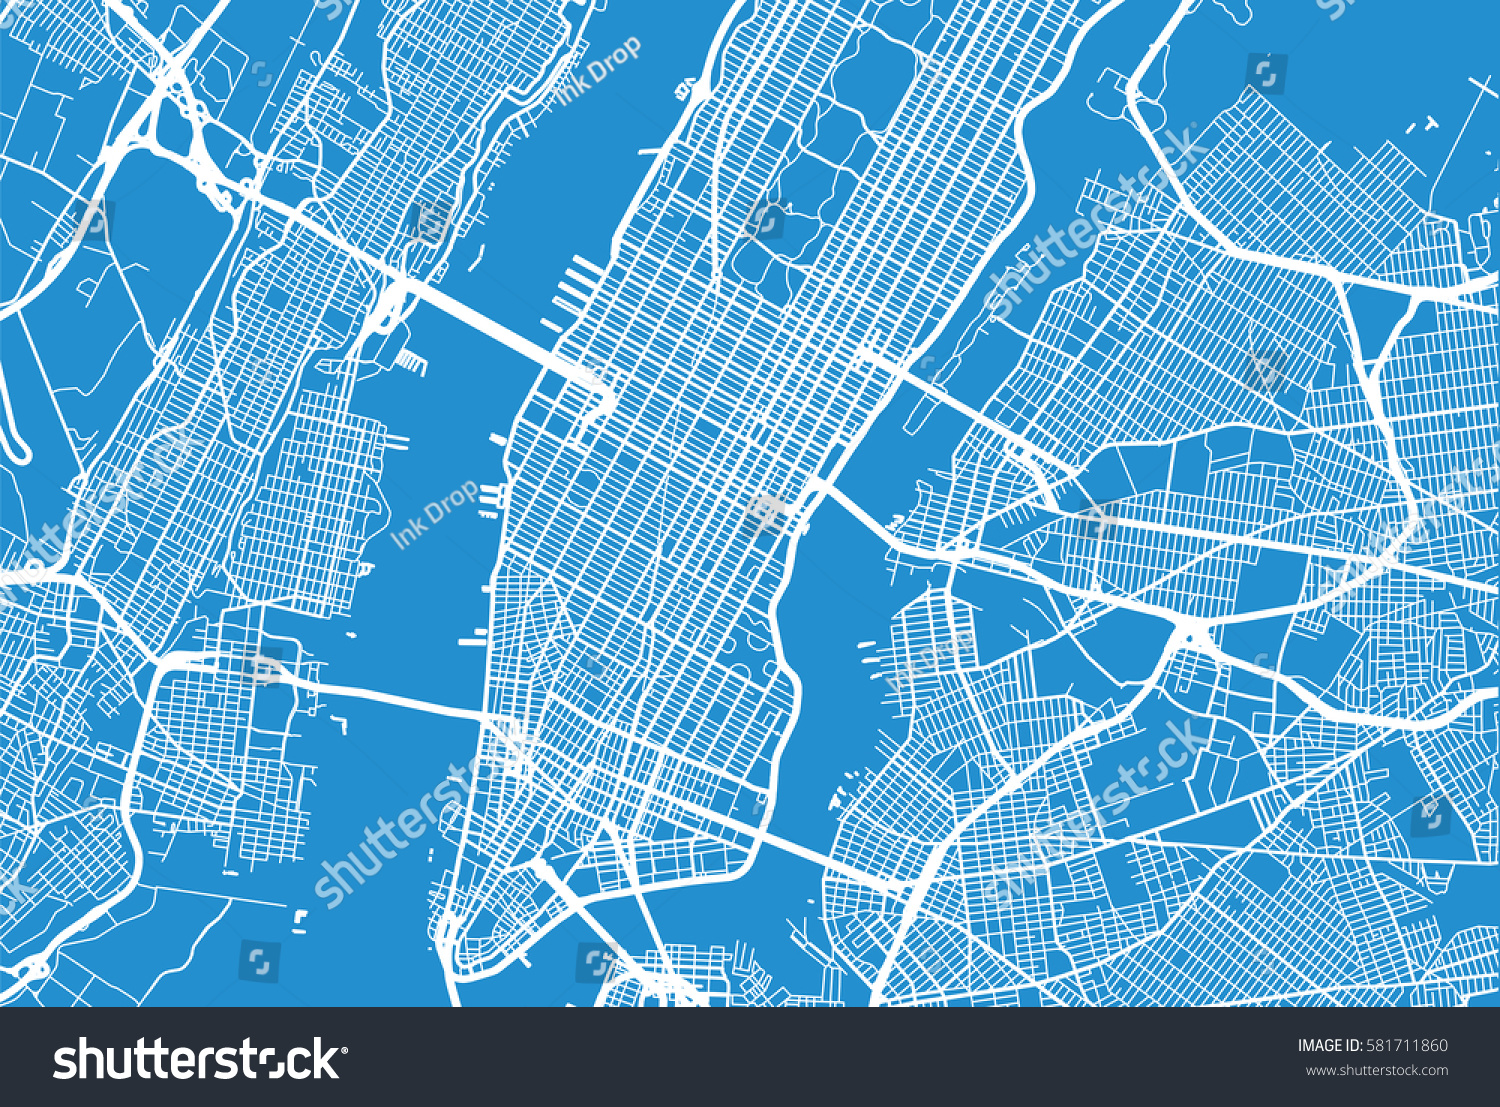 Show Me The Map Of New York.Show Me Map New York Boston